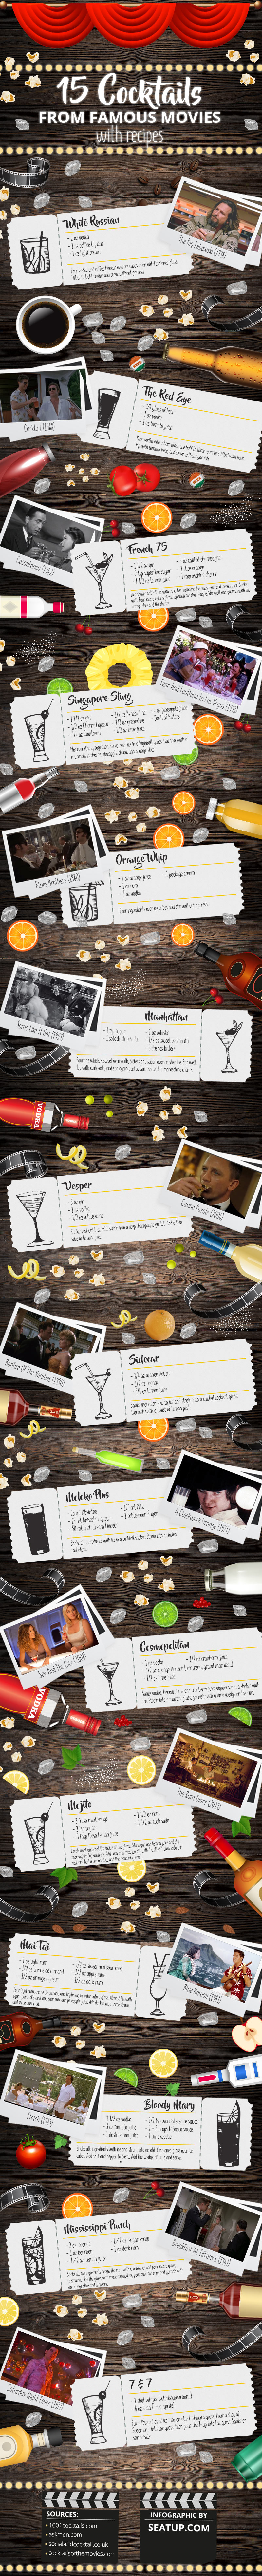 movie-character-cocktails